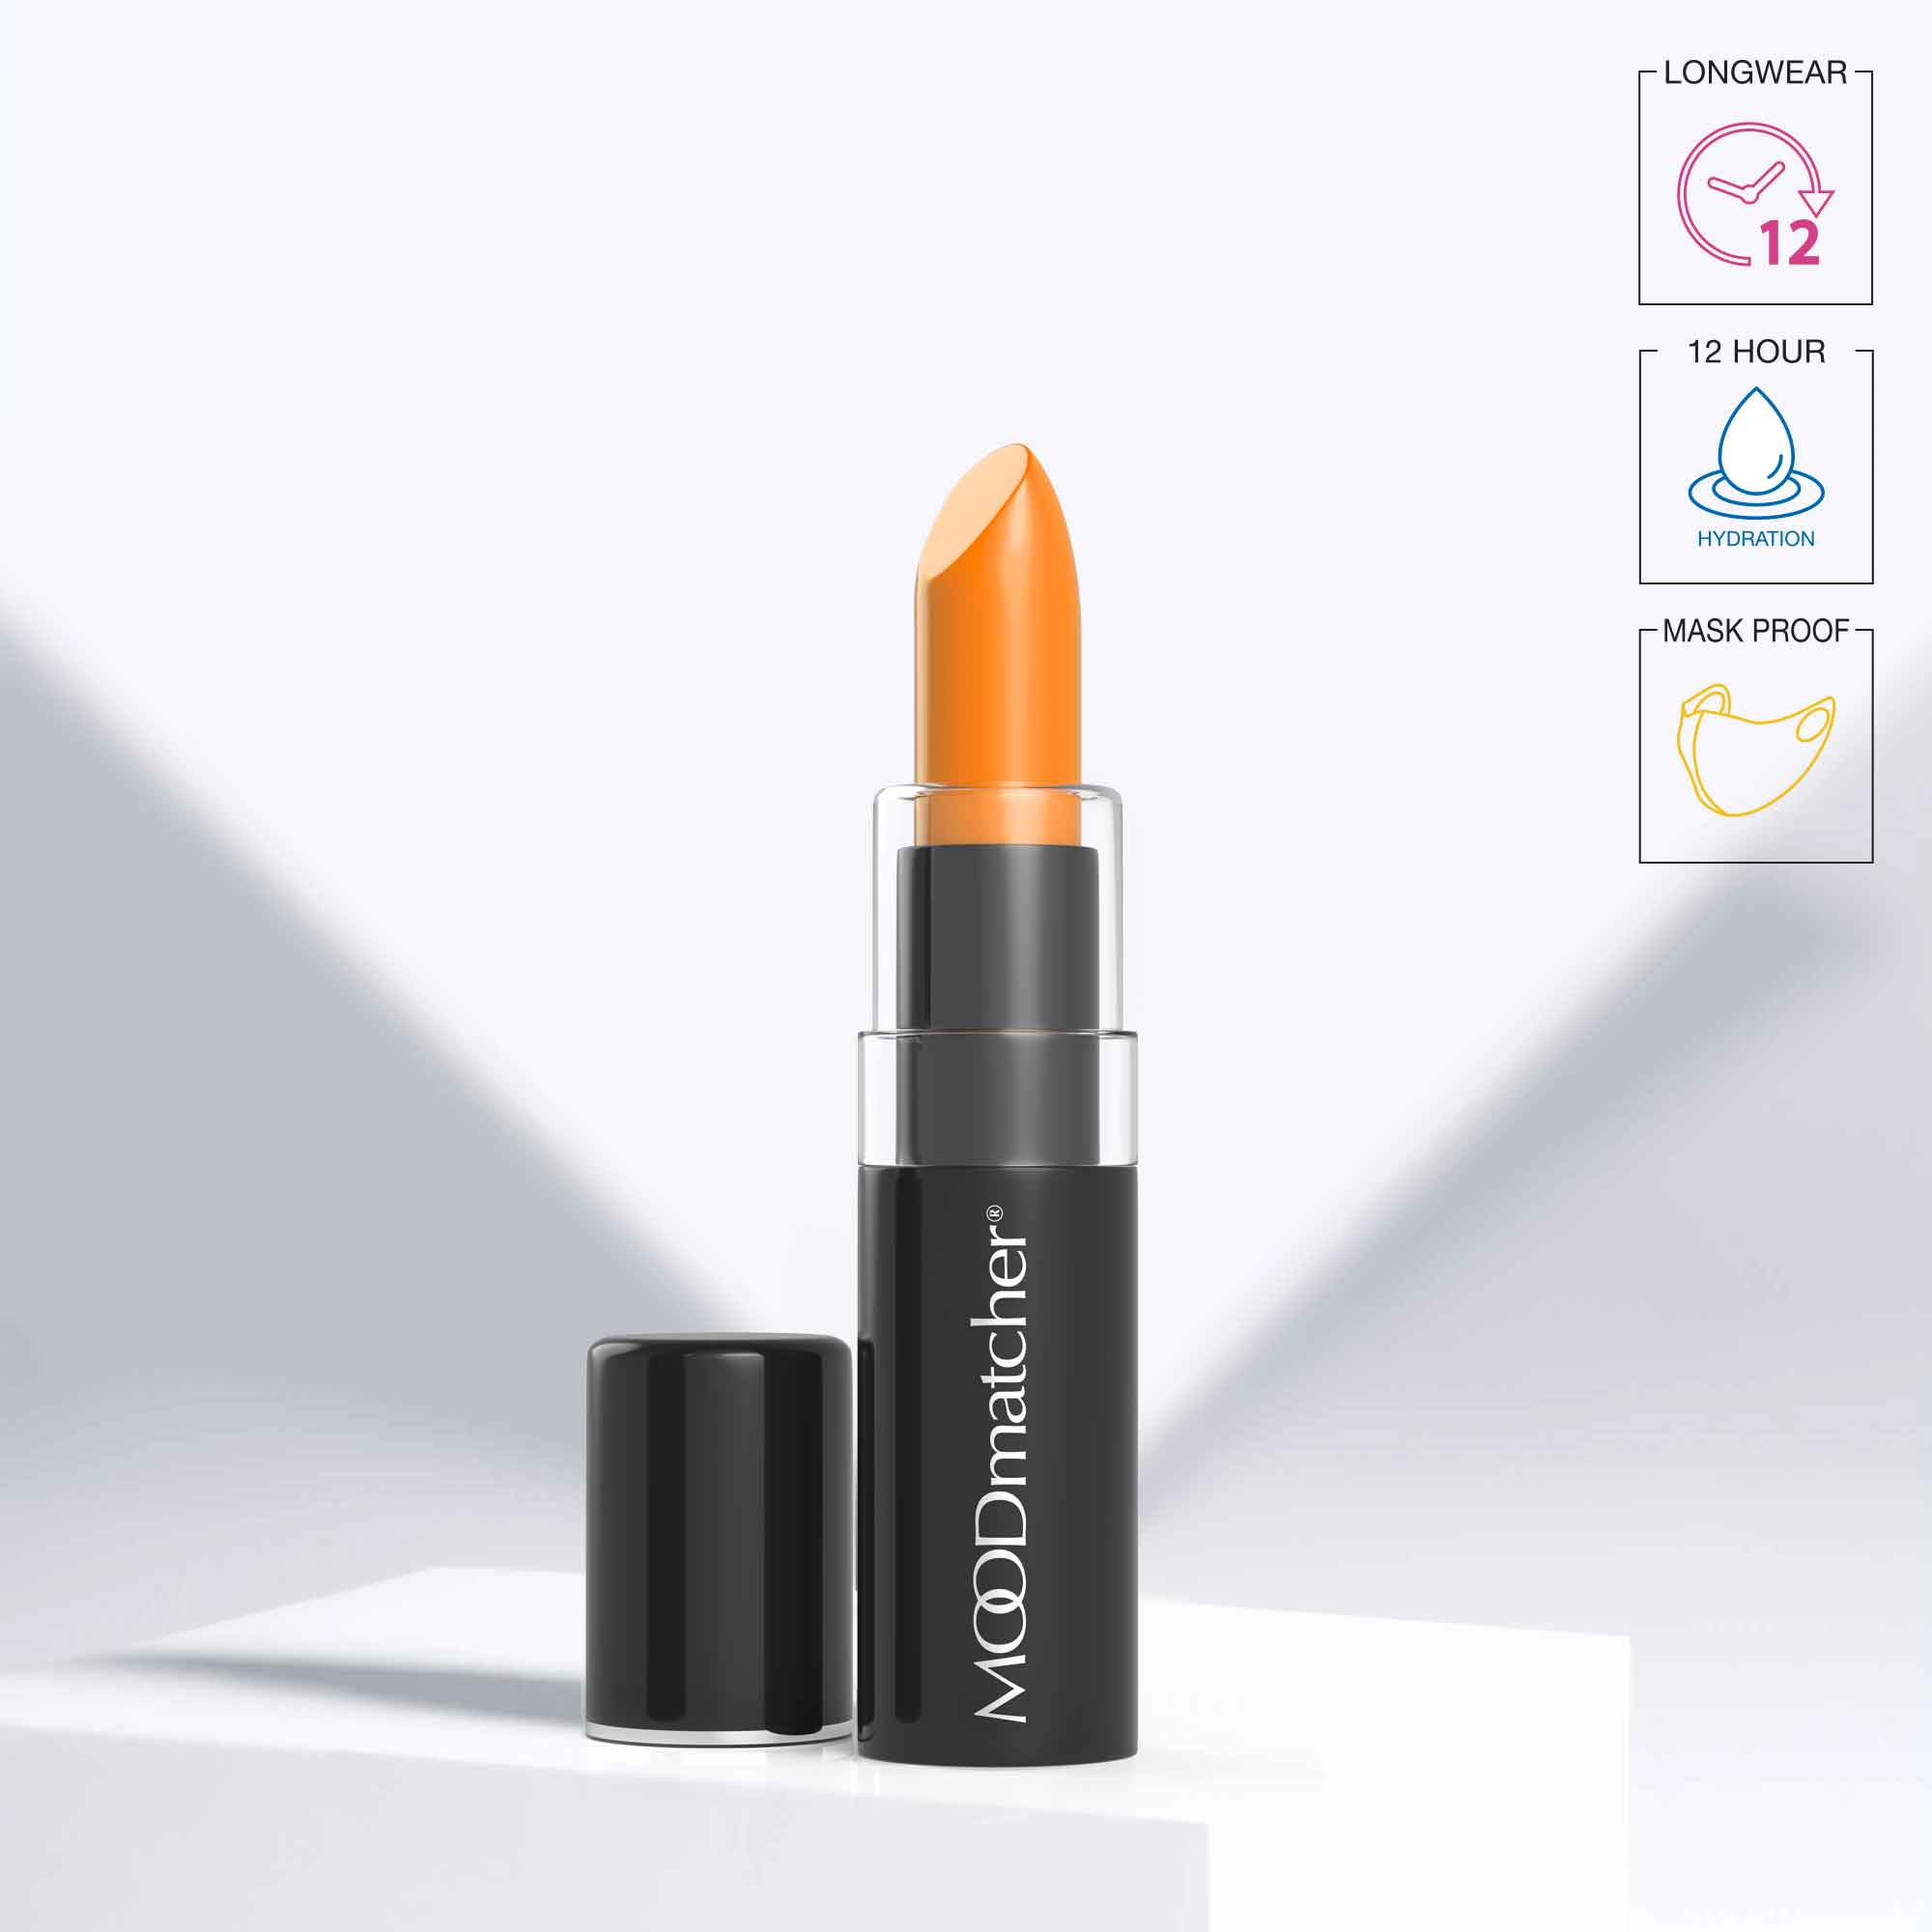 MOODmatcher Lipstick Orange - Fran Wilson